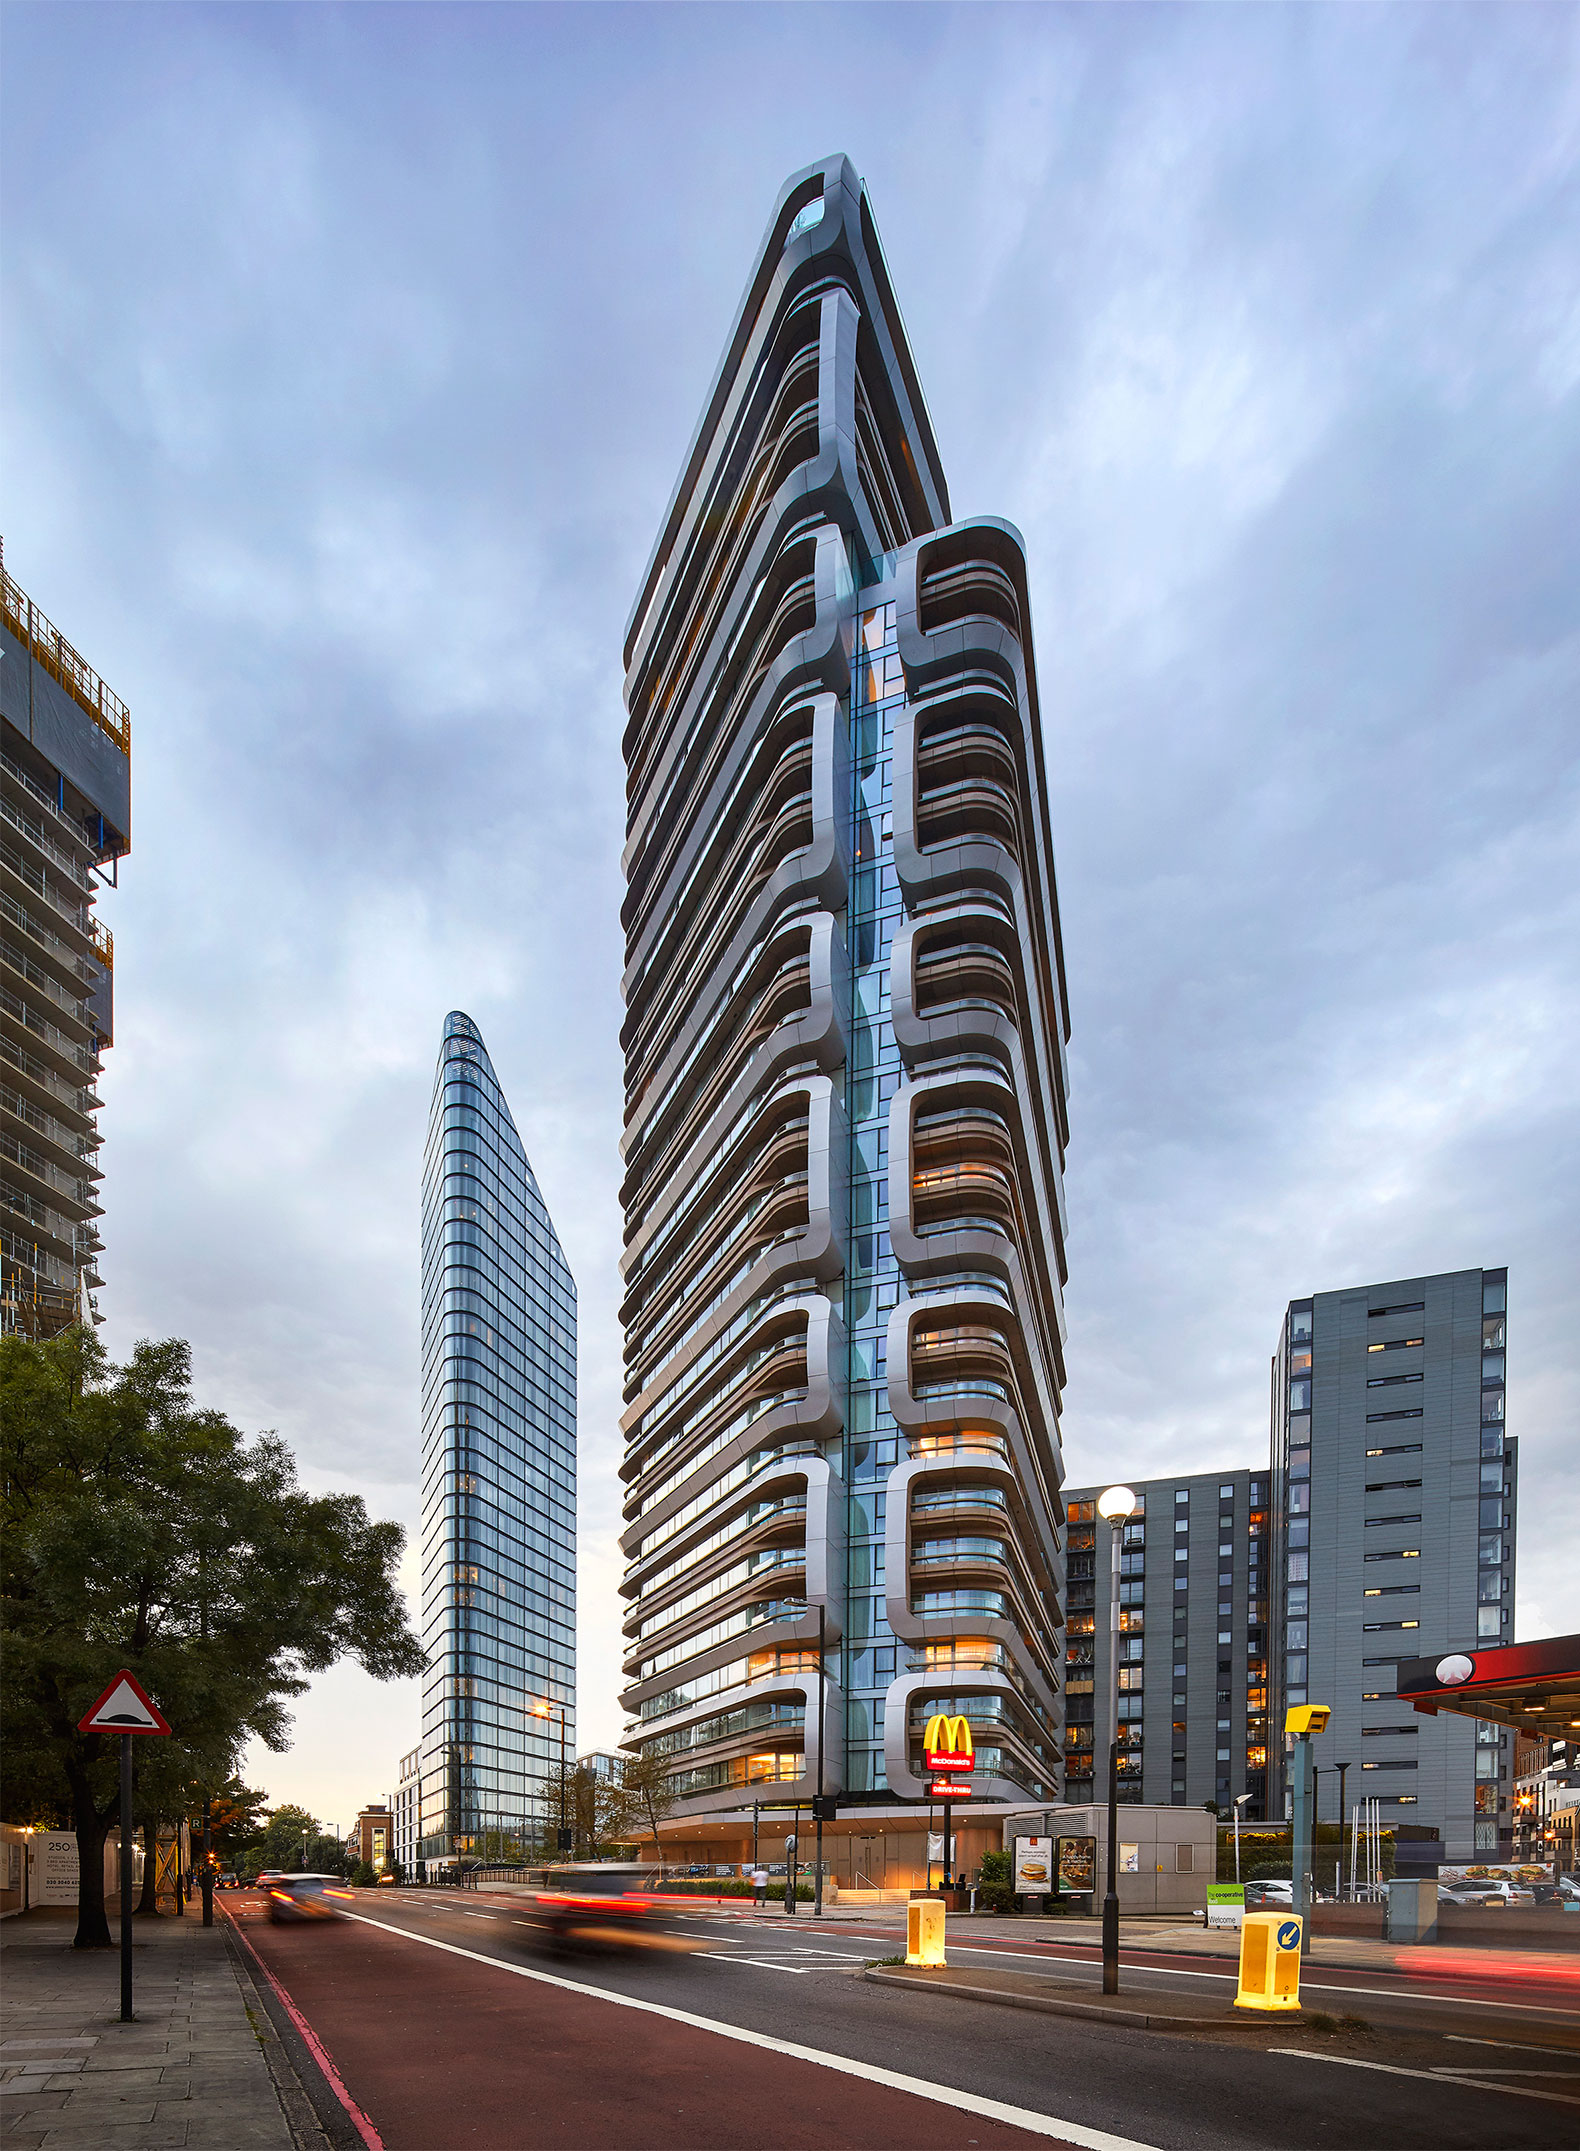 Unstudio Completed The Canaletto Tower In London Metalocus